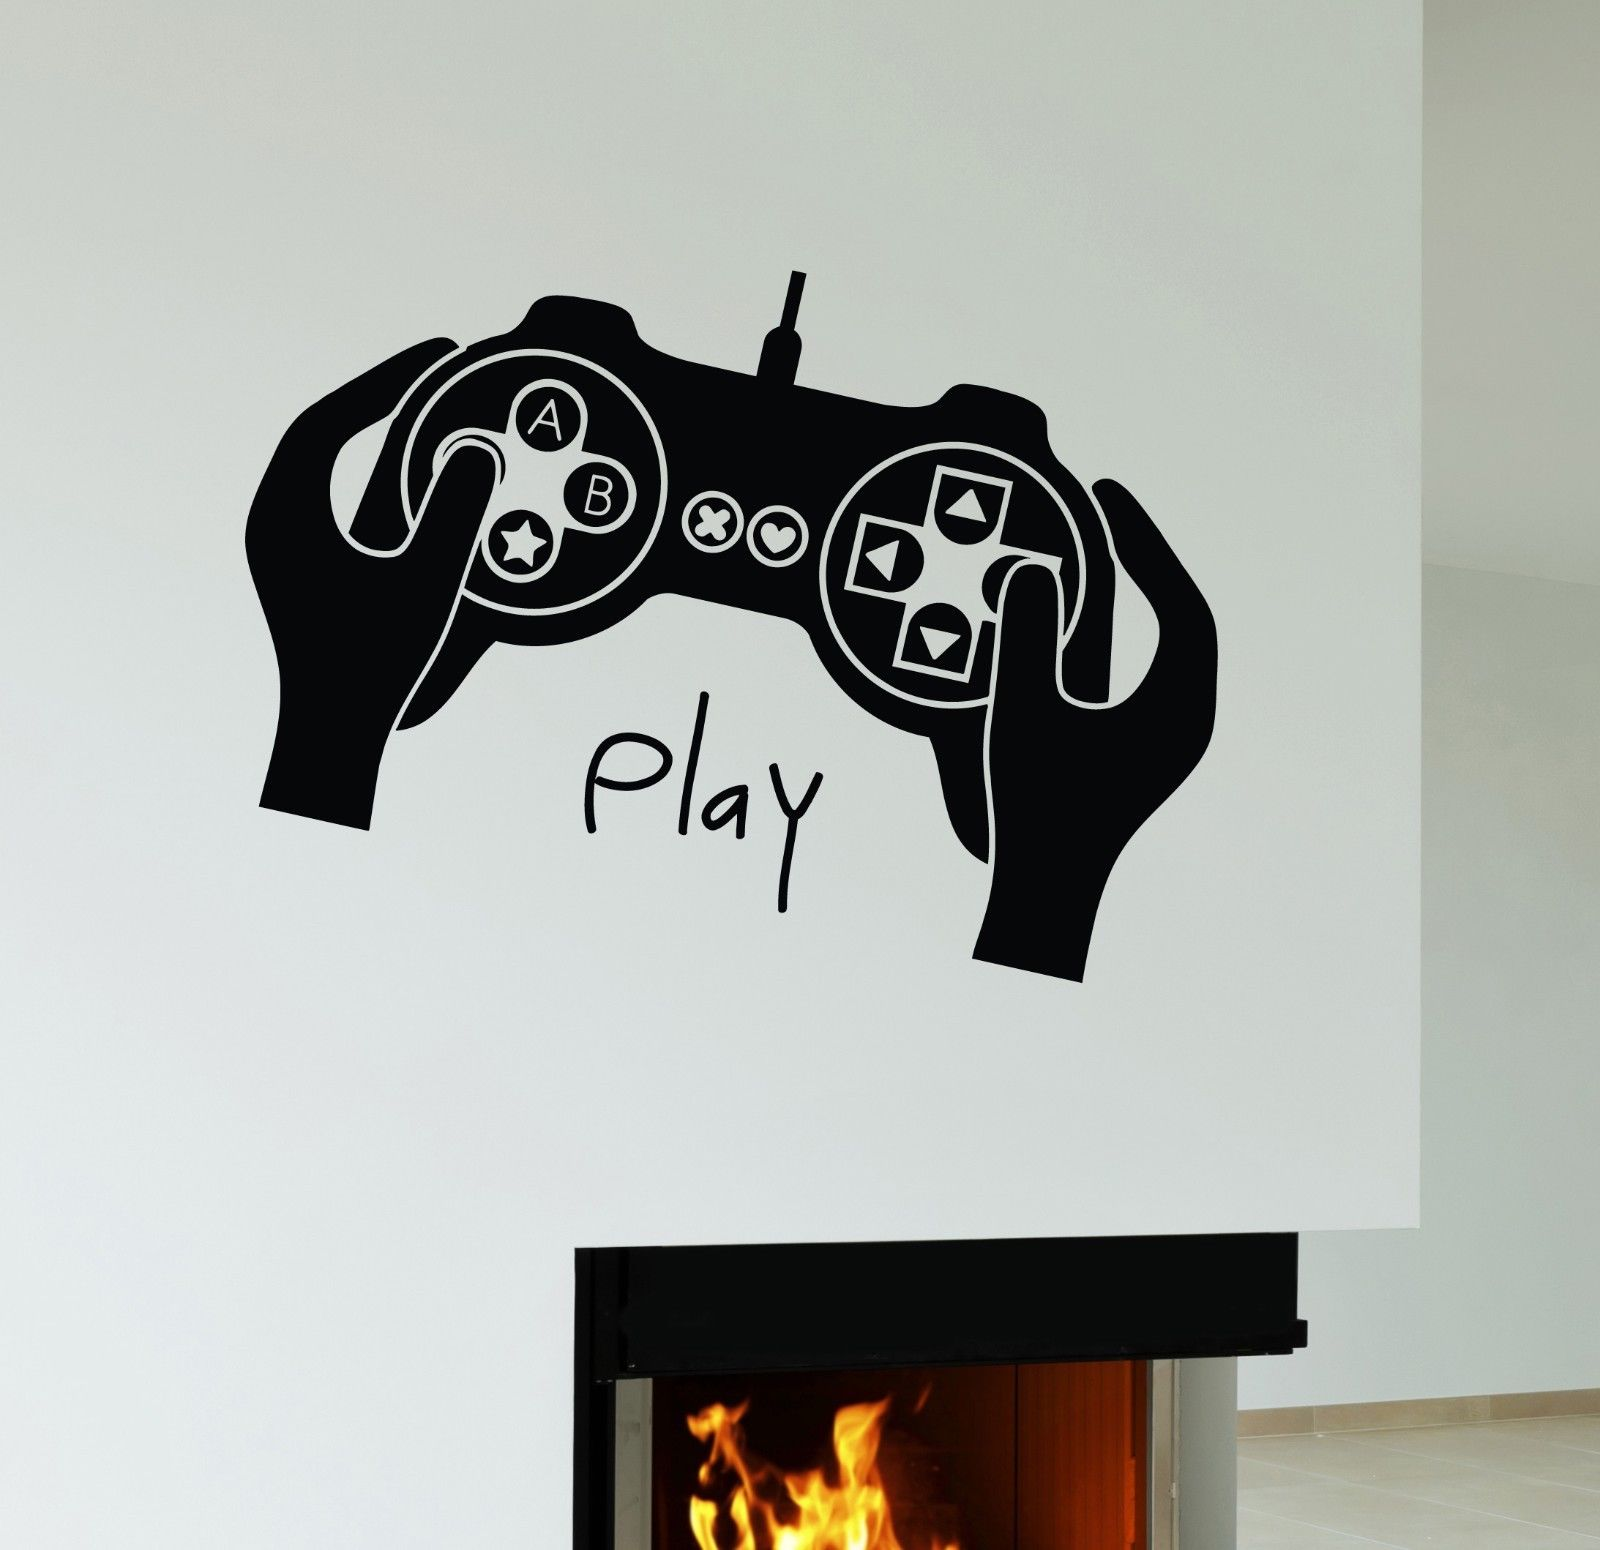 Gamer Video Game Play Room Joystick Pvc Wallpaper Sticker